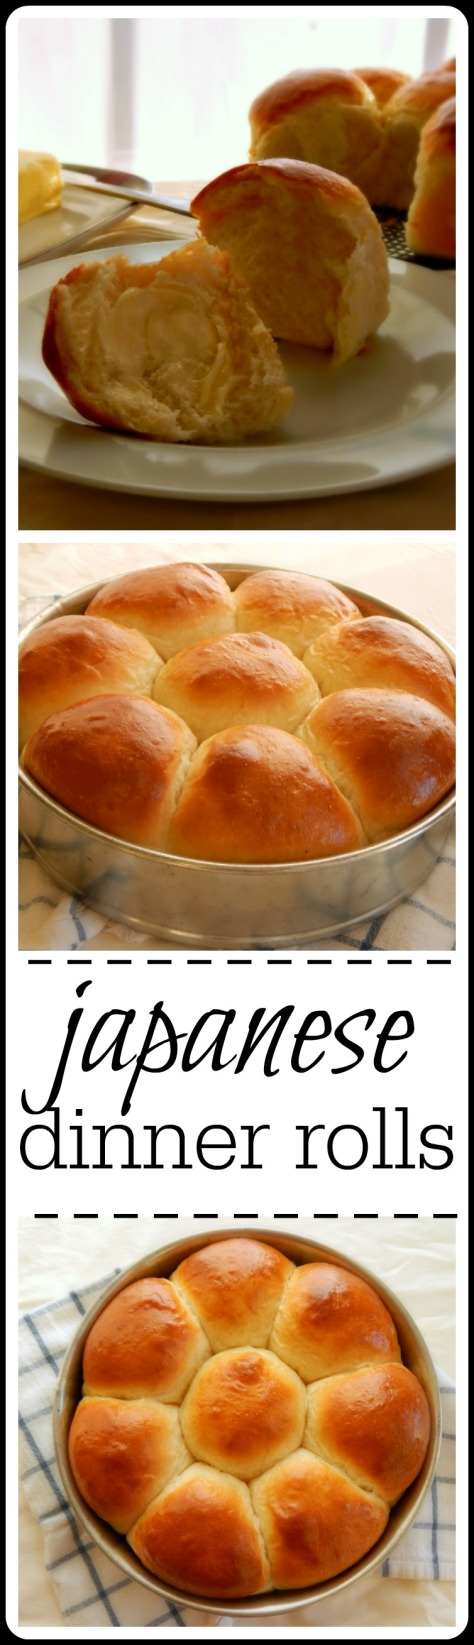 Japanese dinner rolls - these are the lightest, fluffiest dinner rolls you can ever imagine!